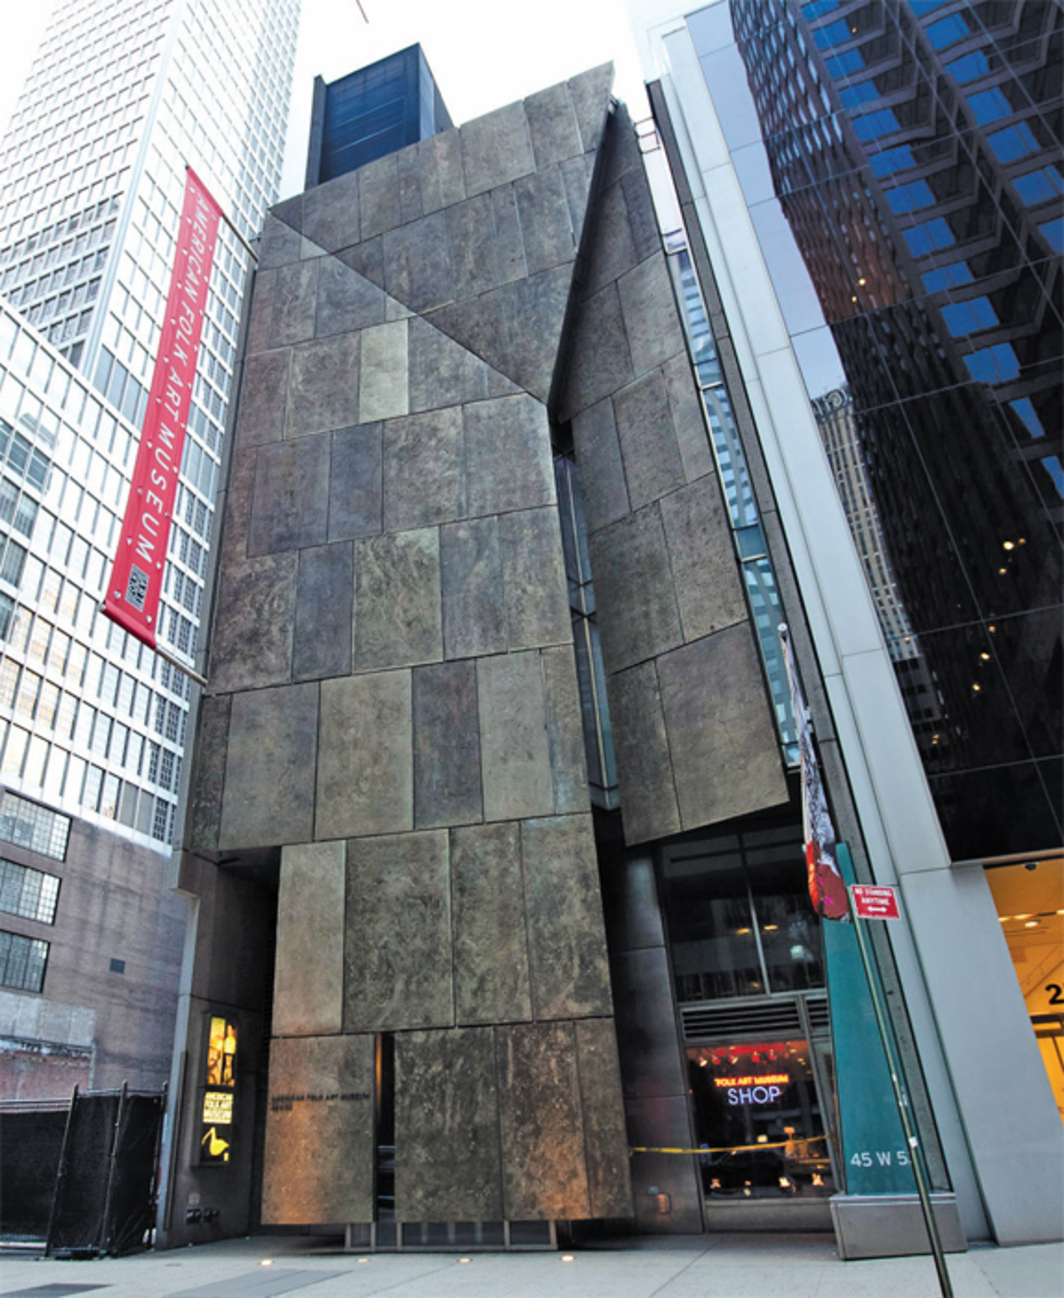 preservation and MoMA's proposed expansion